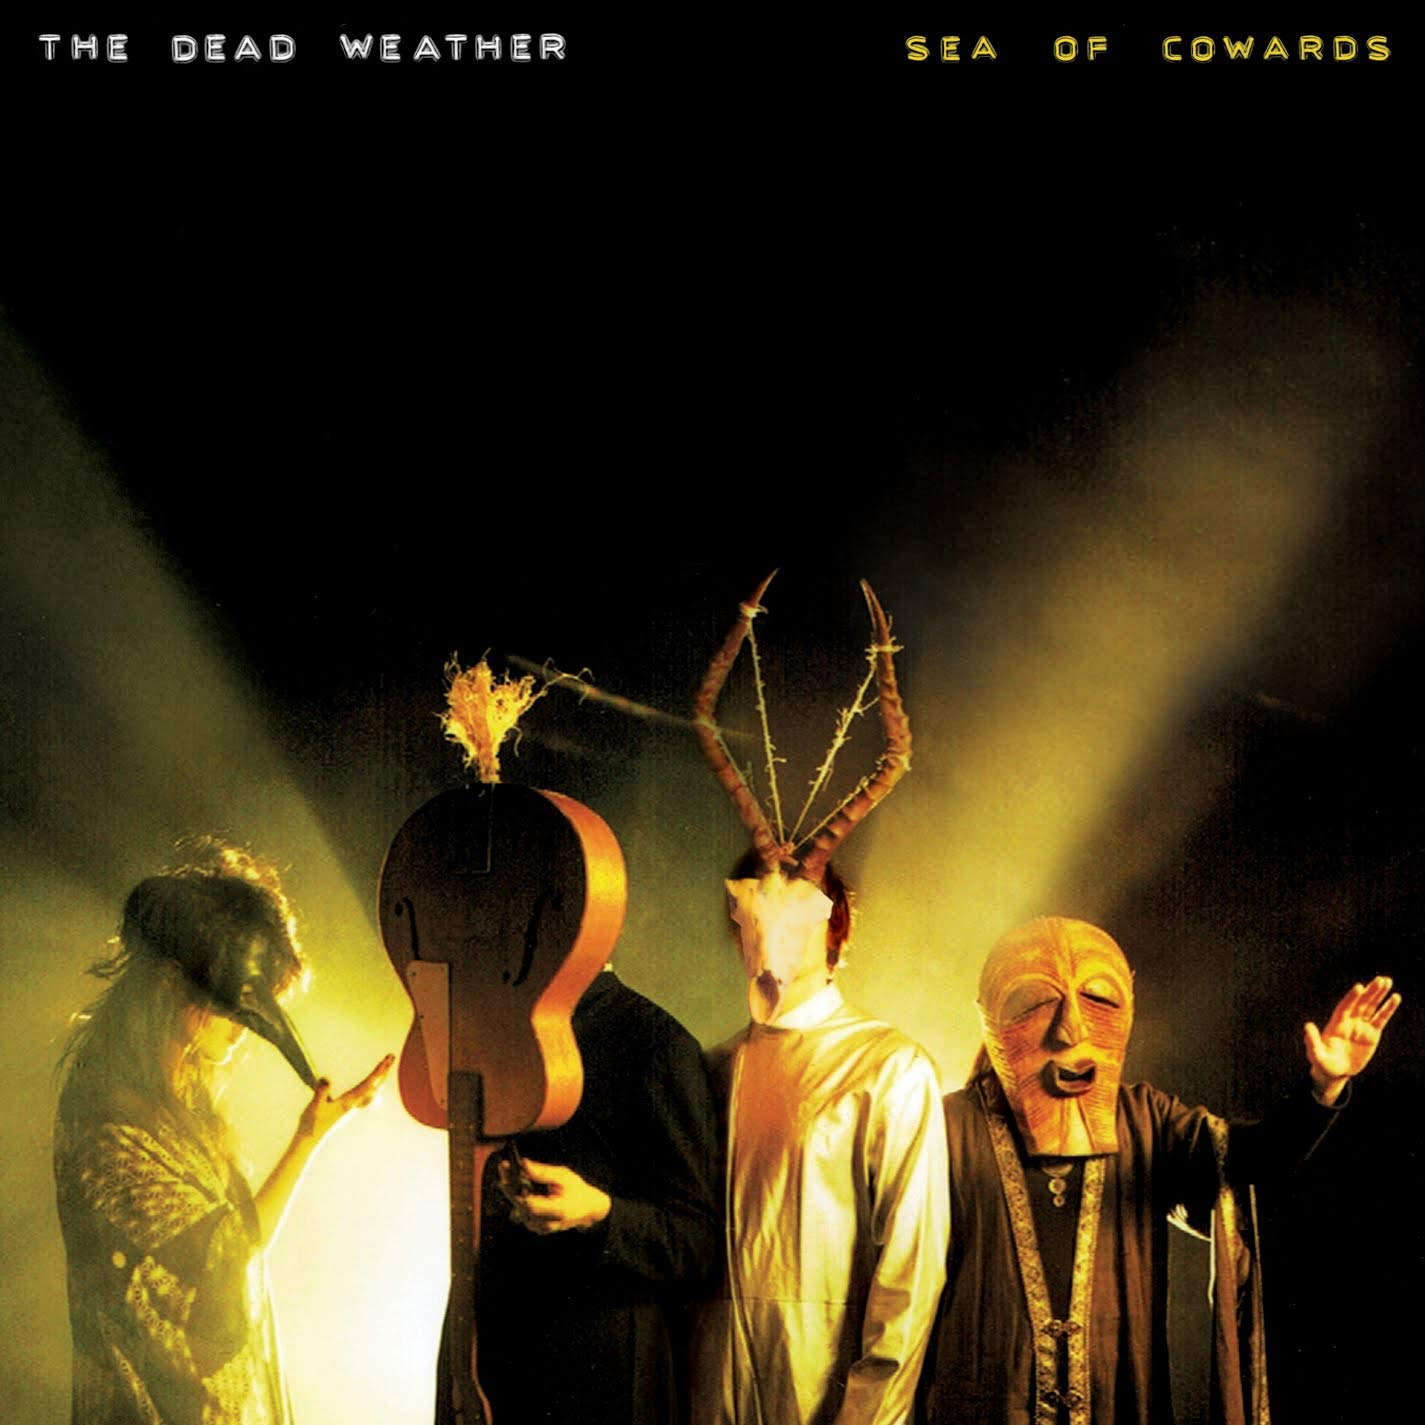 The Dead Weather, Sea of Cowards